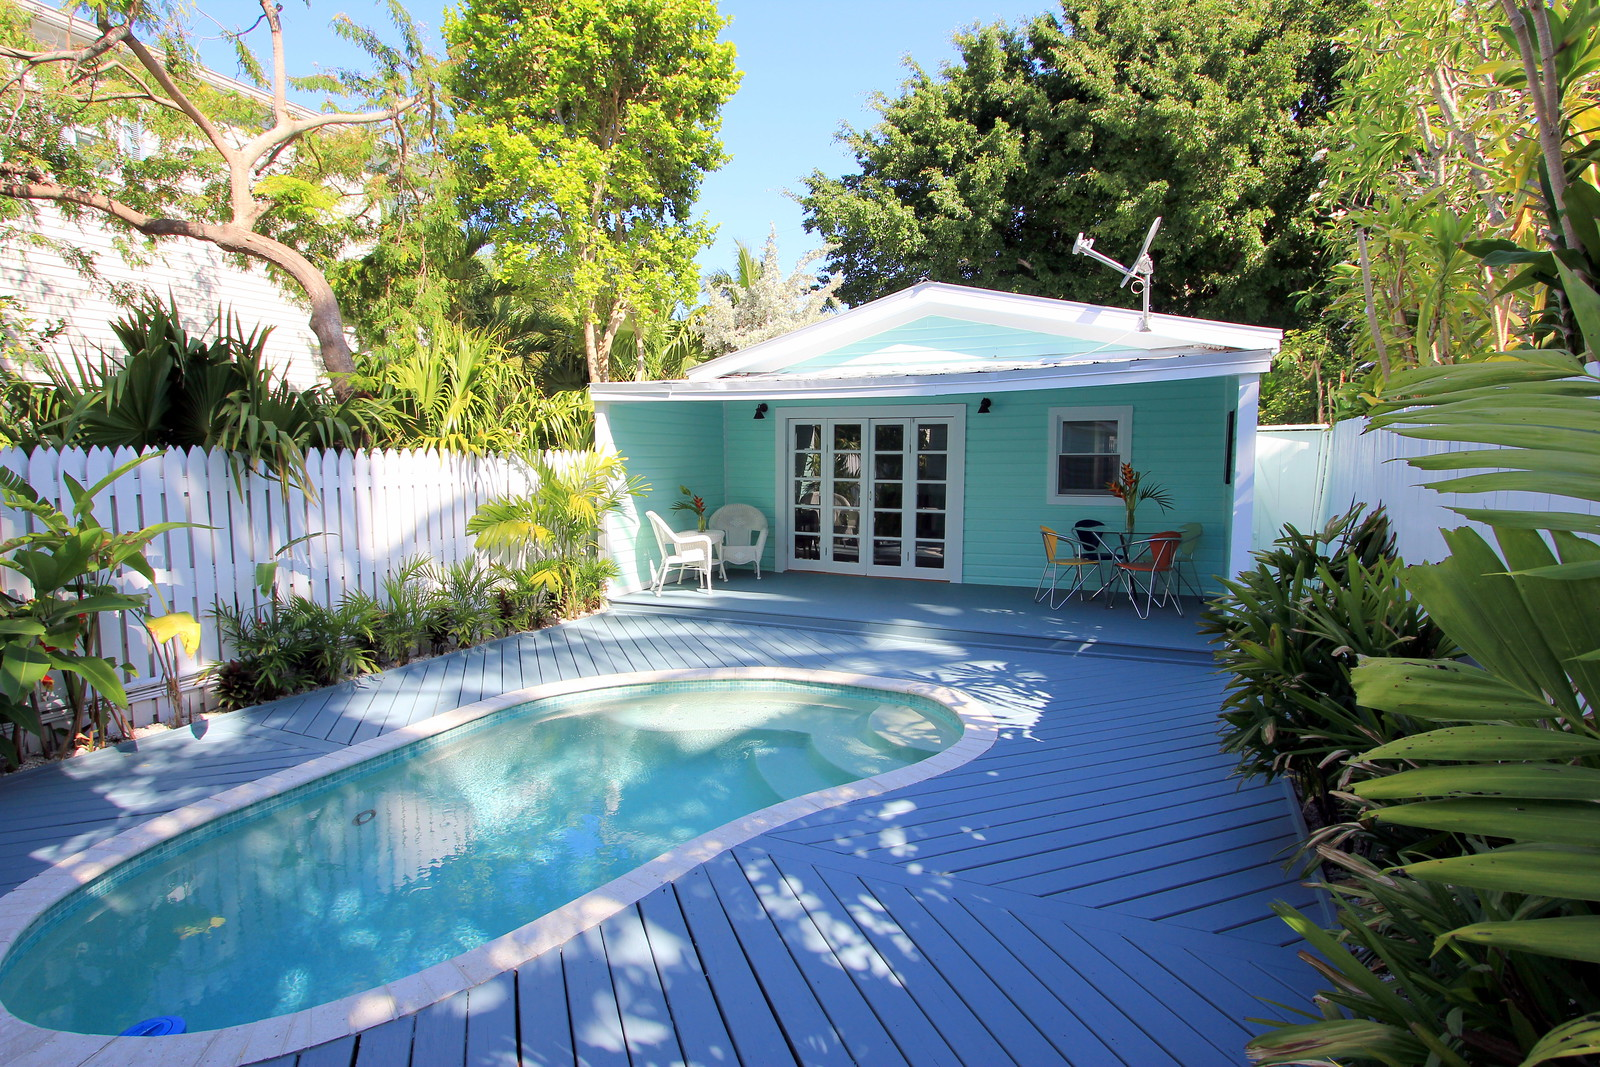 812 johnson lane key west florida your key west dream cottage